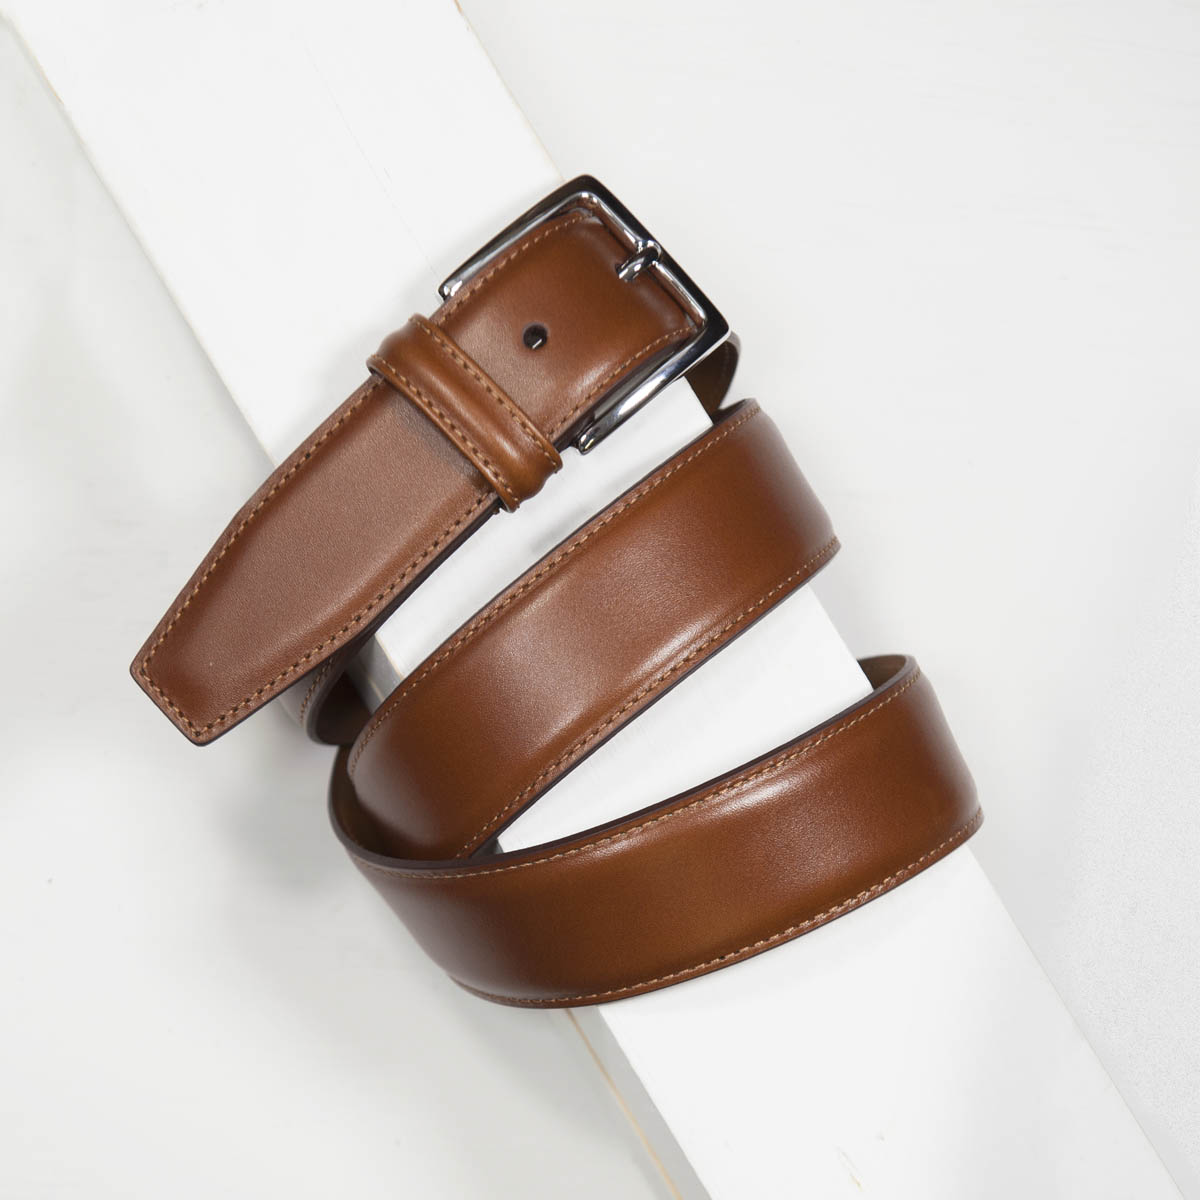 3,5 cm CLASSIC TAN STITCHED BELT